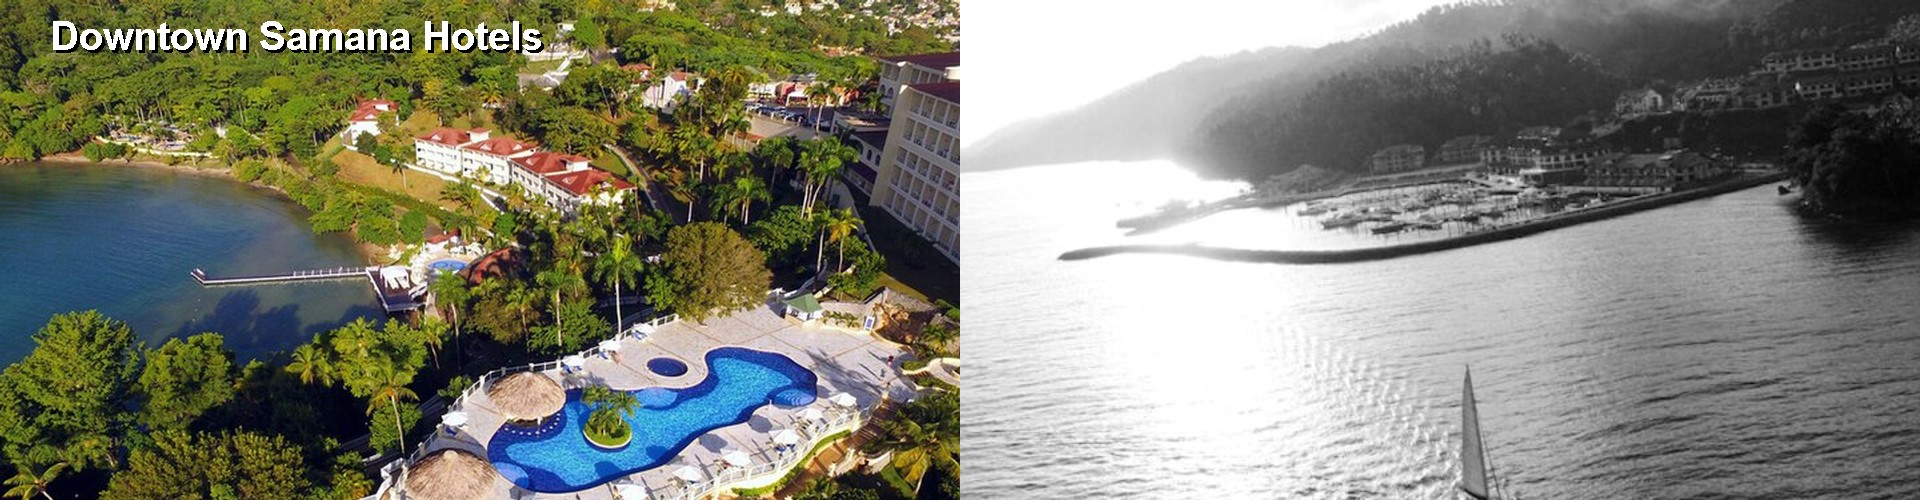 5 Best Hotels near Downtown Samana